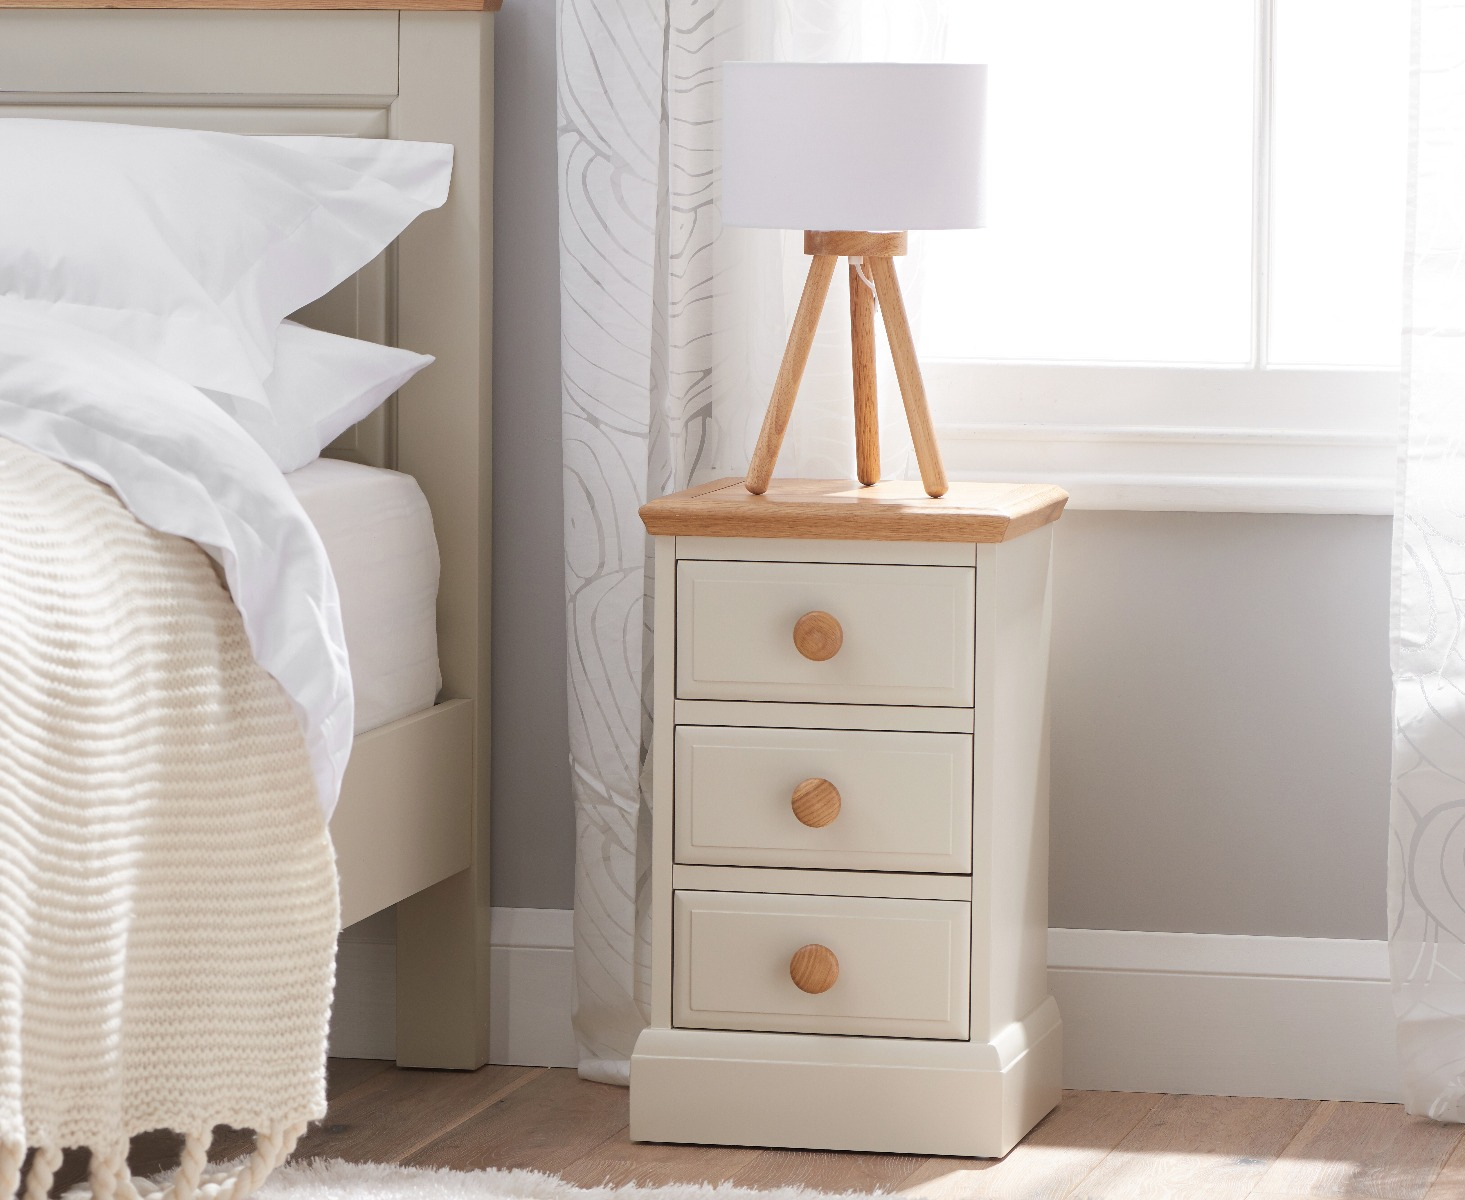 Image of Addison Oak and Stone Painted 3 Drawer Bedside Table